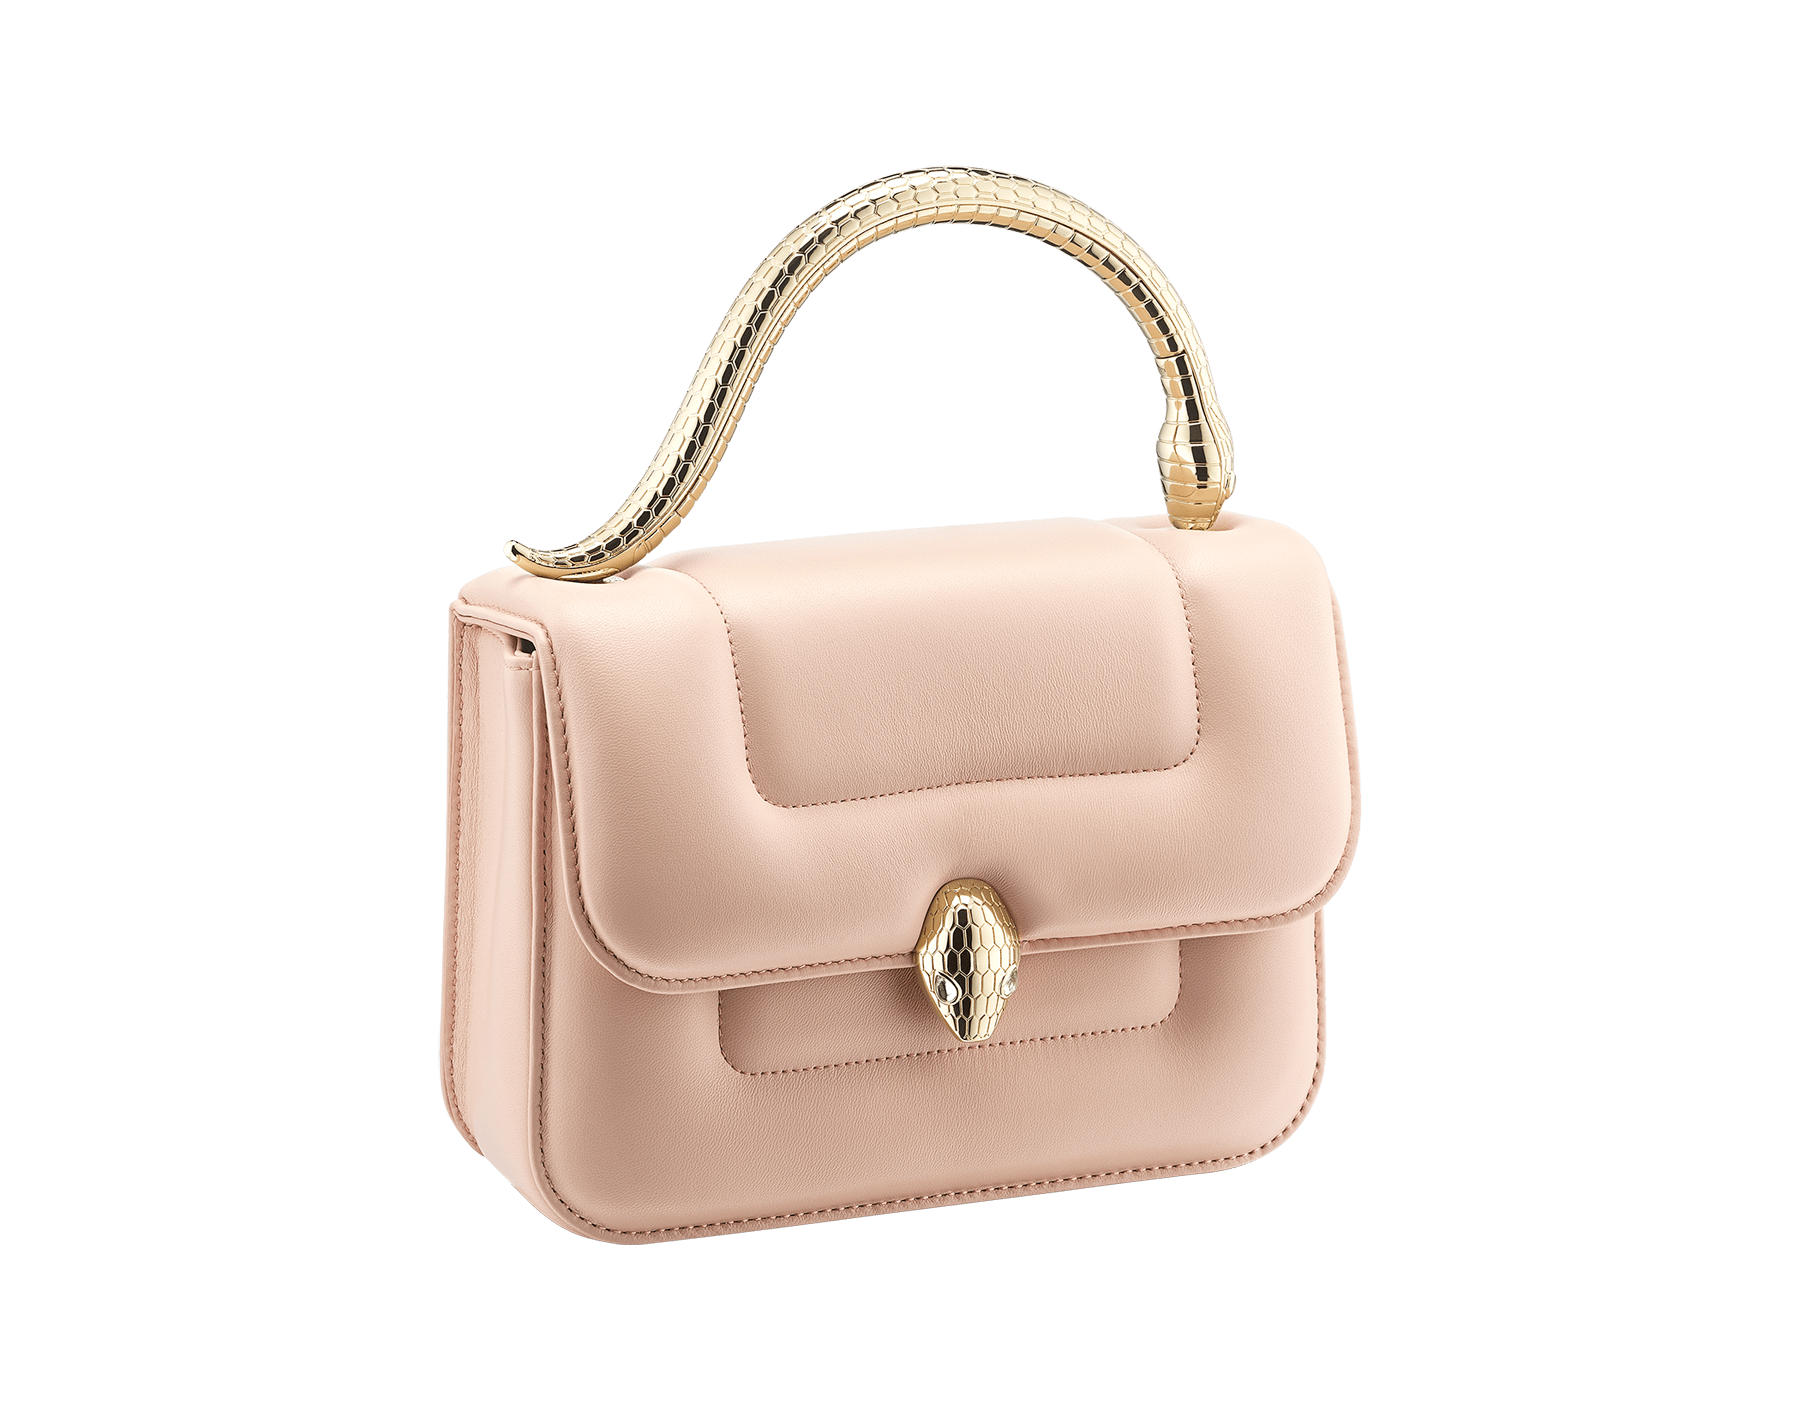 """""""Mary Katrantzou x Bvlgari"""" top handle bag in soft matelassé Aegean Topaz blue nappa leather, with Aegean Topaz blue nappa leather inner lining. New Serpenti head closure in gold-plated brass, finished with seductive crystal eyes. Special Edition. MK-1142 image 2"""